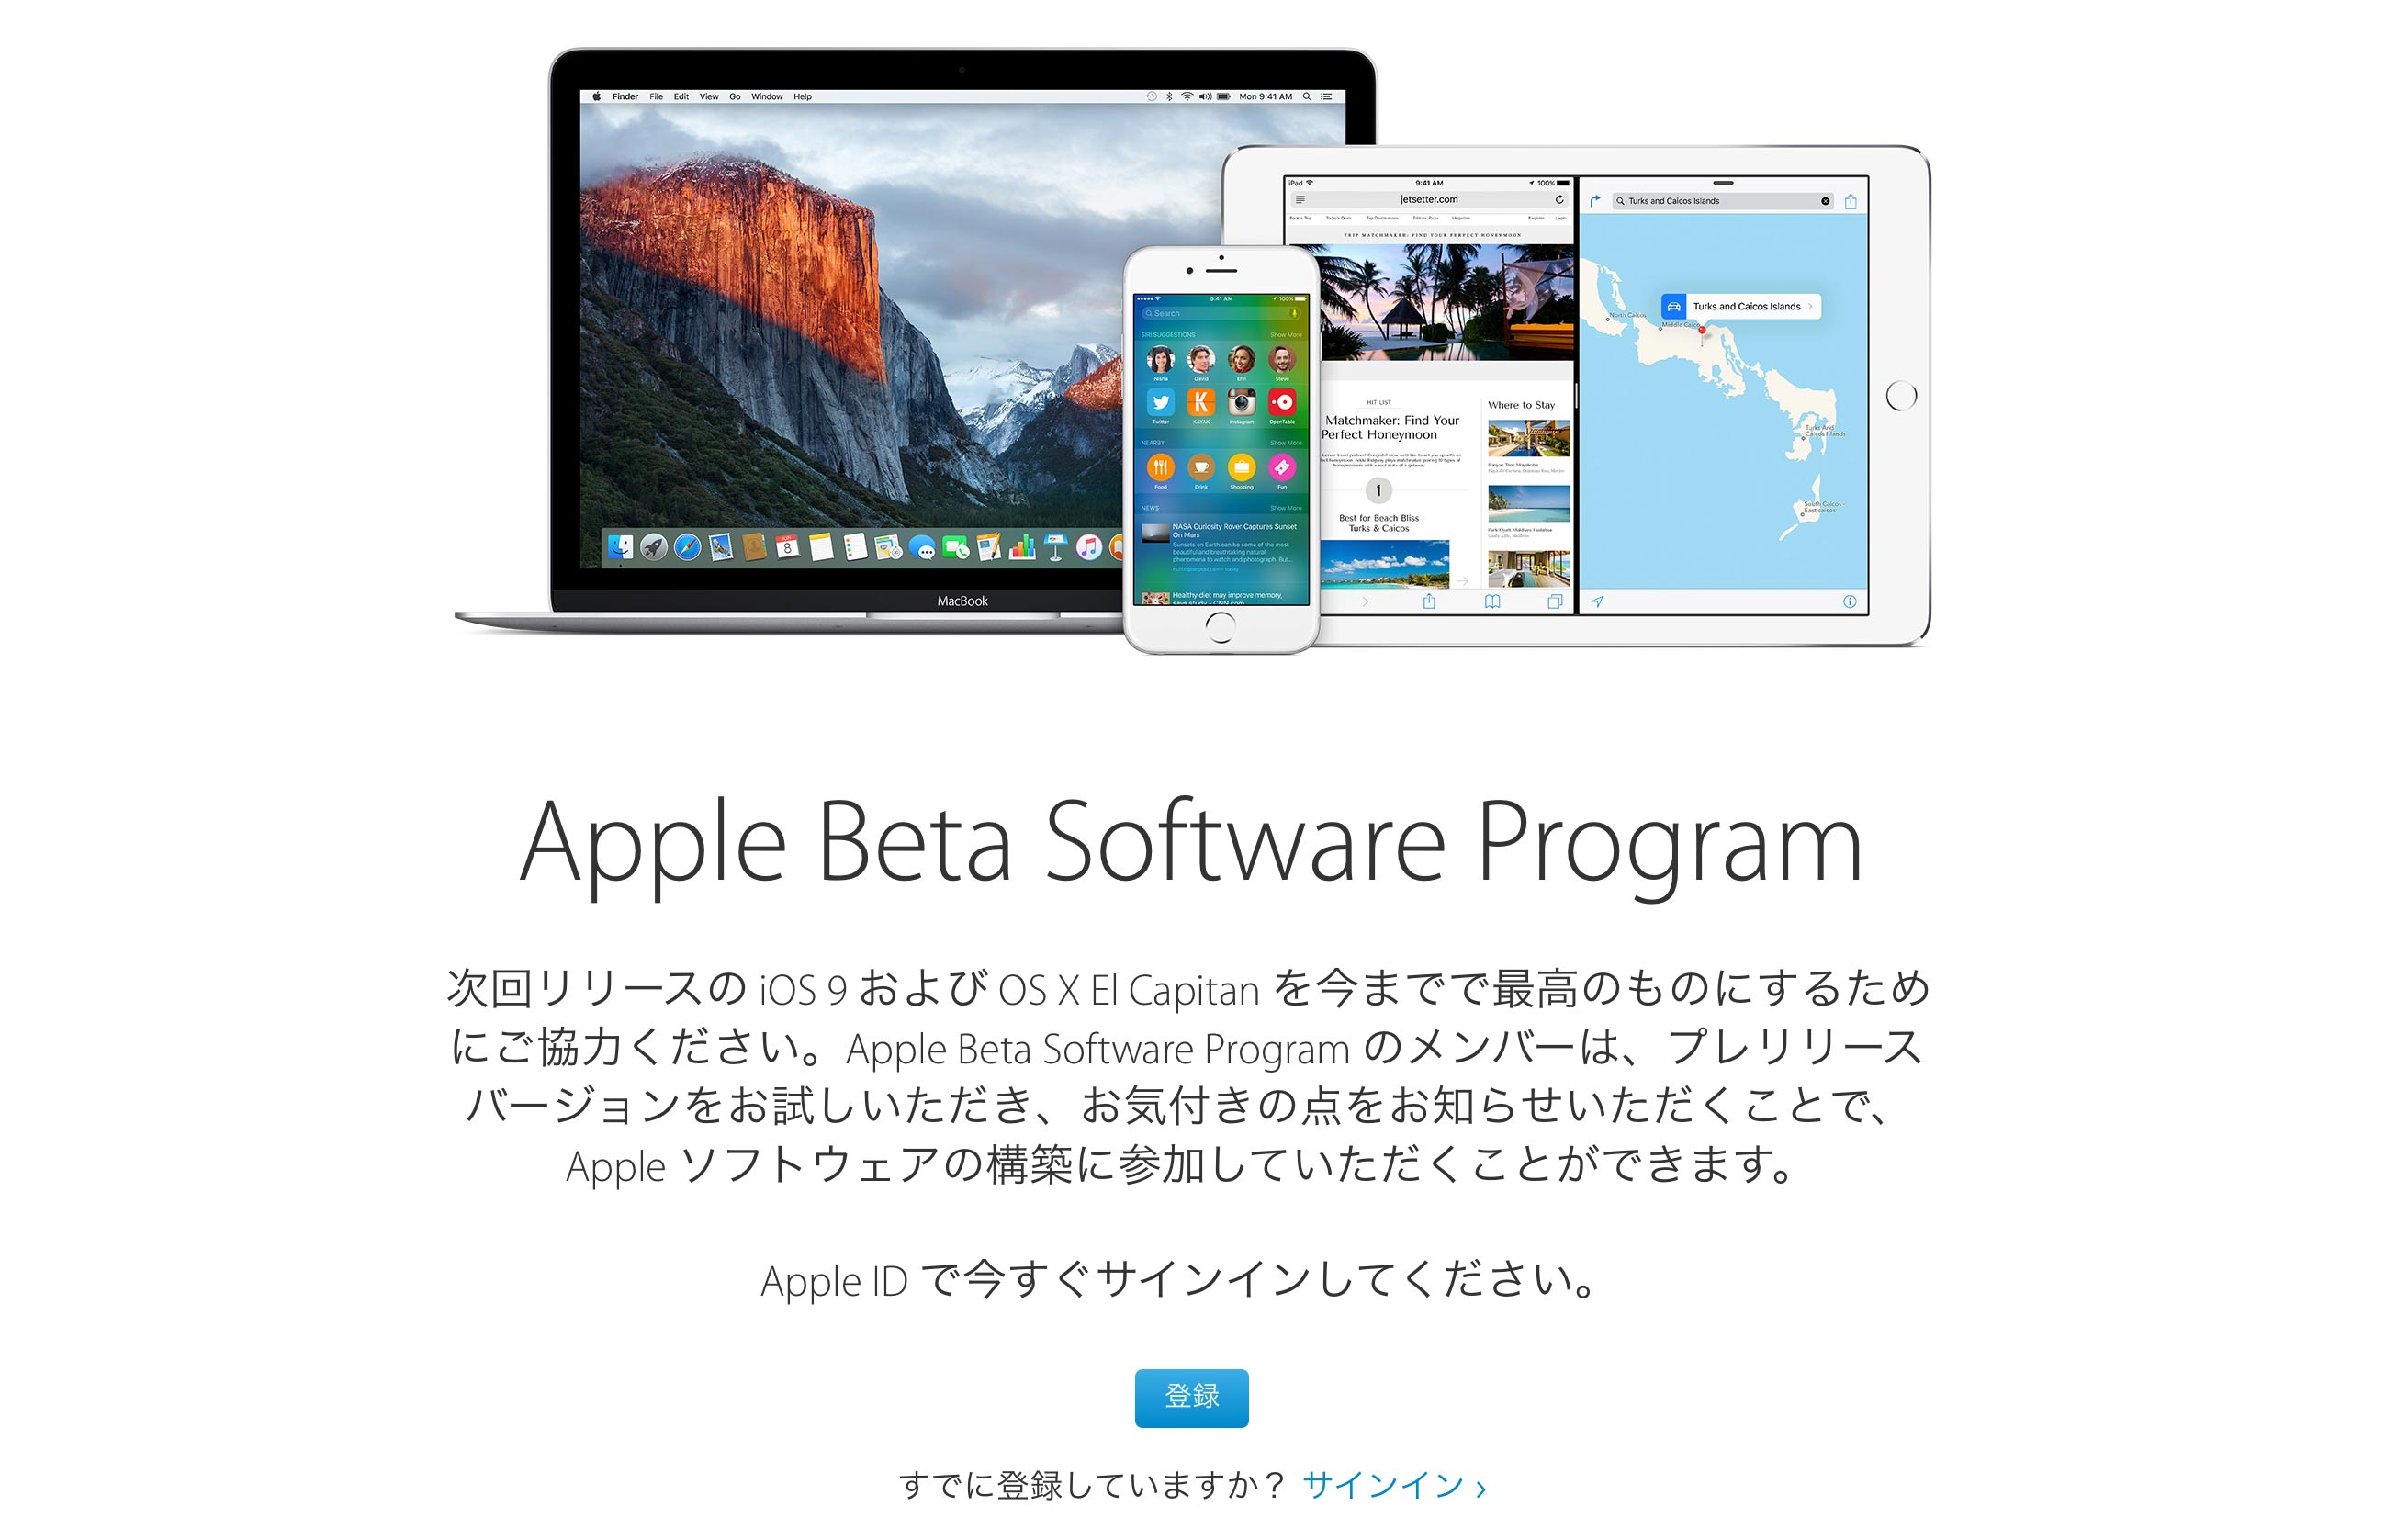 Apple Beta Software Programに登録